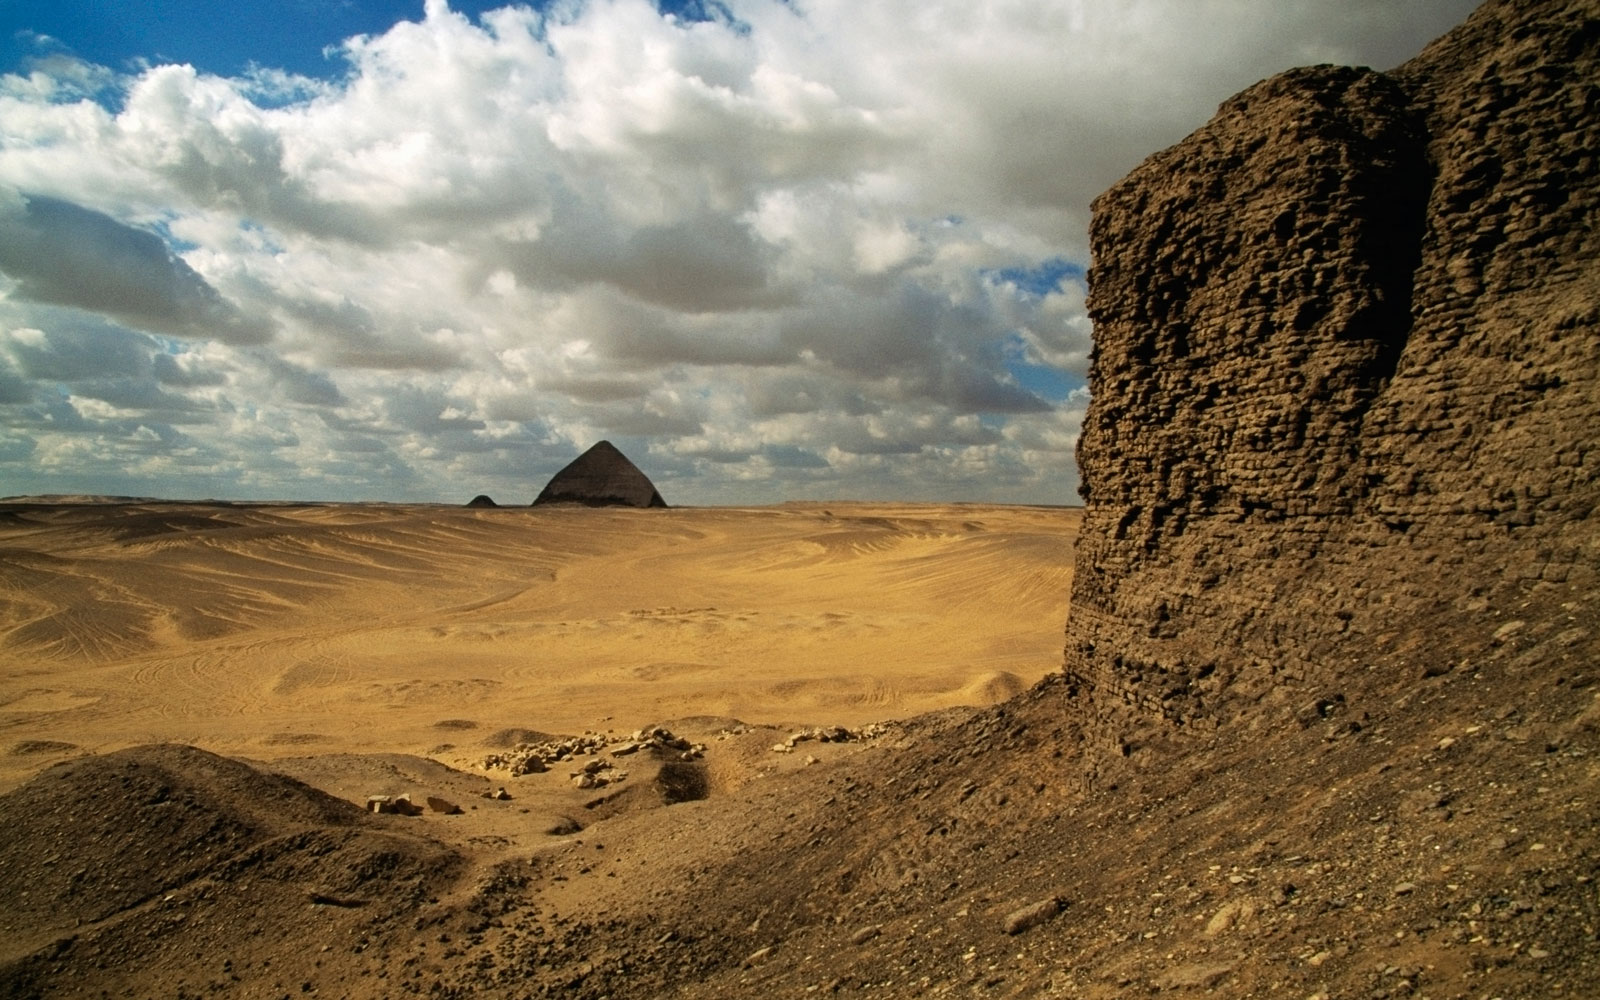 'New' Ancient Pyramid Discovered Outside of Cairo